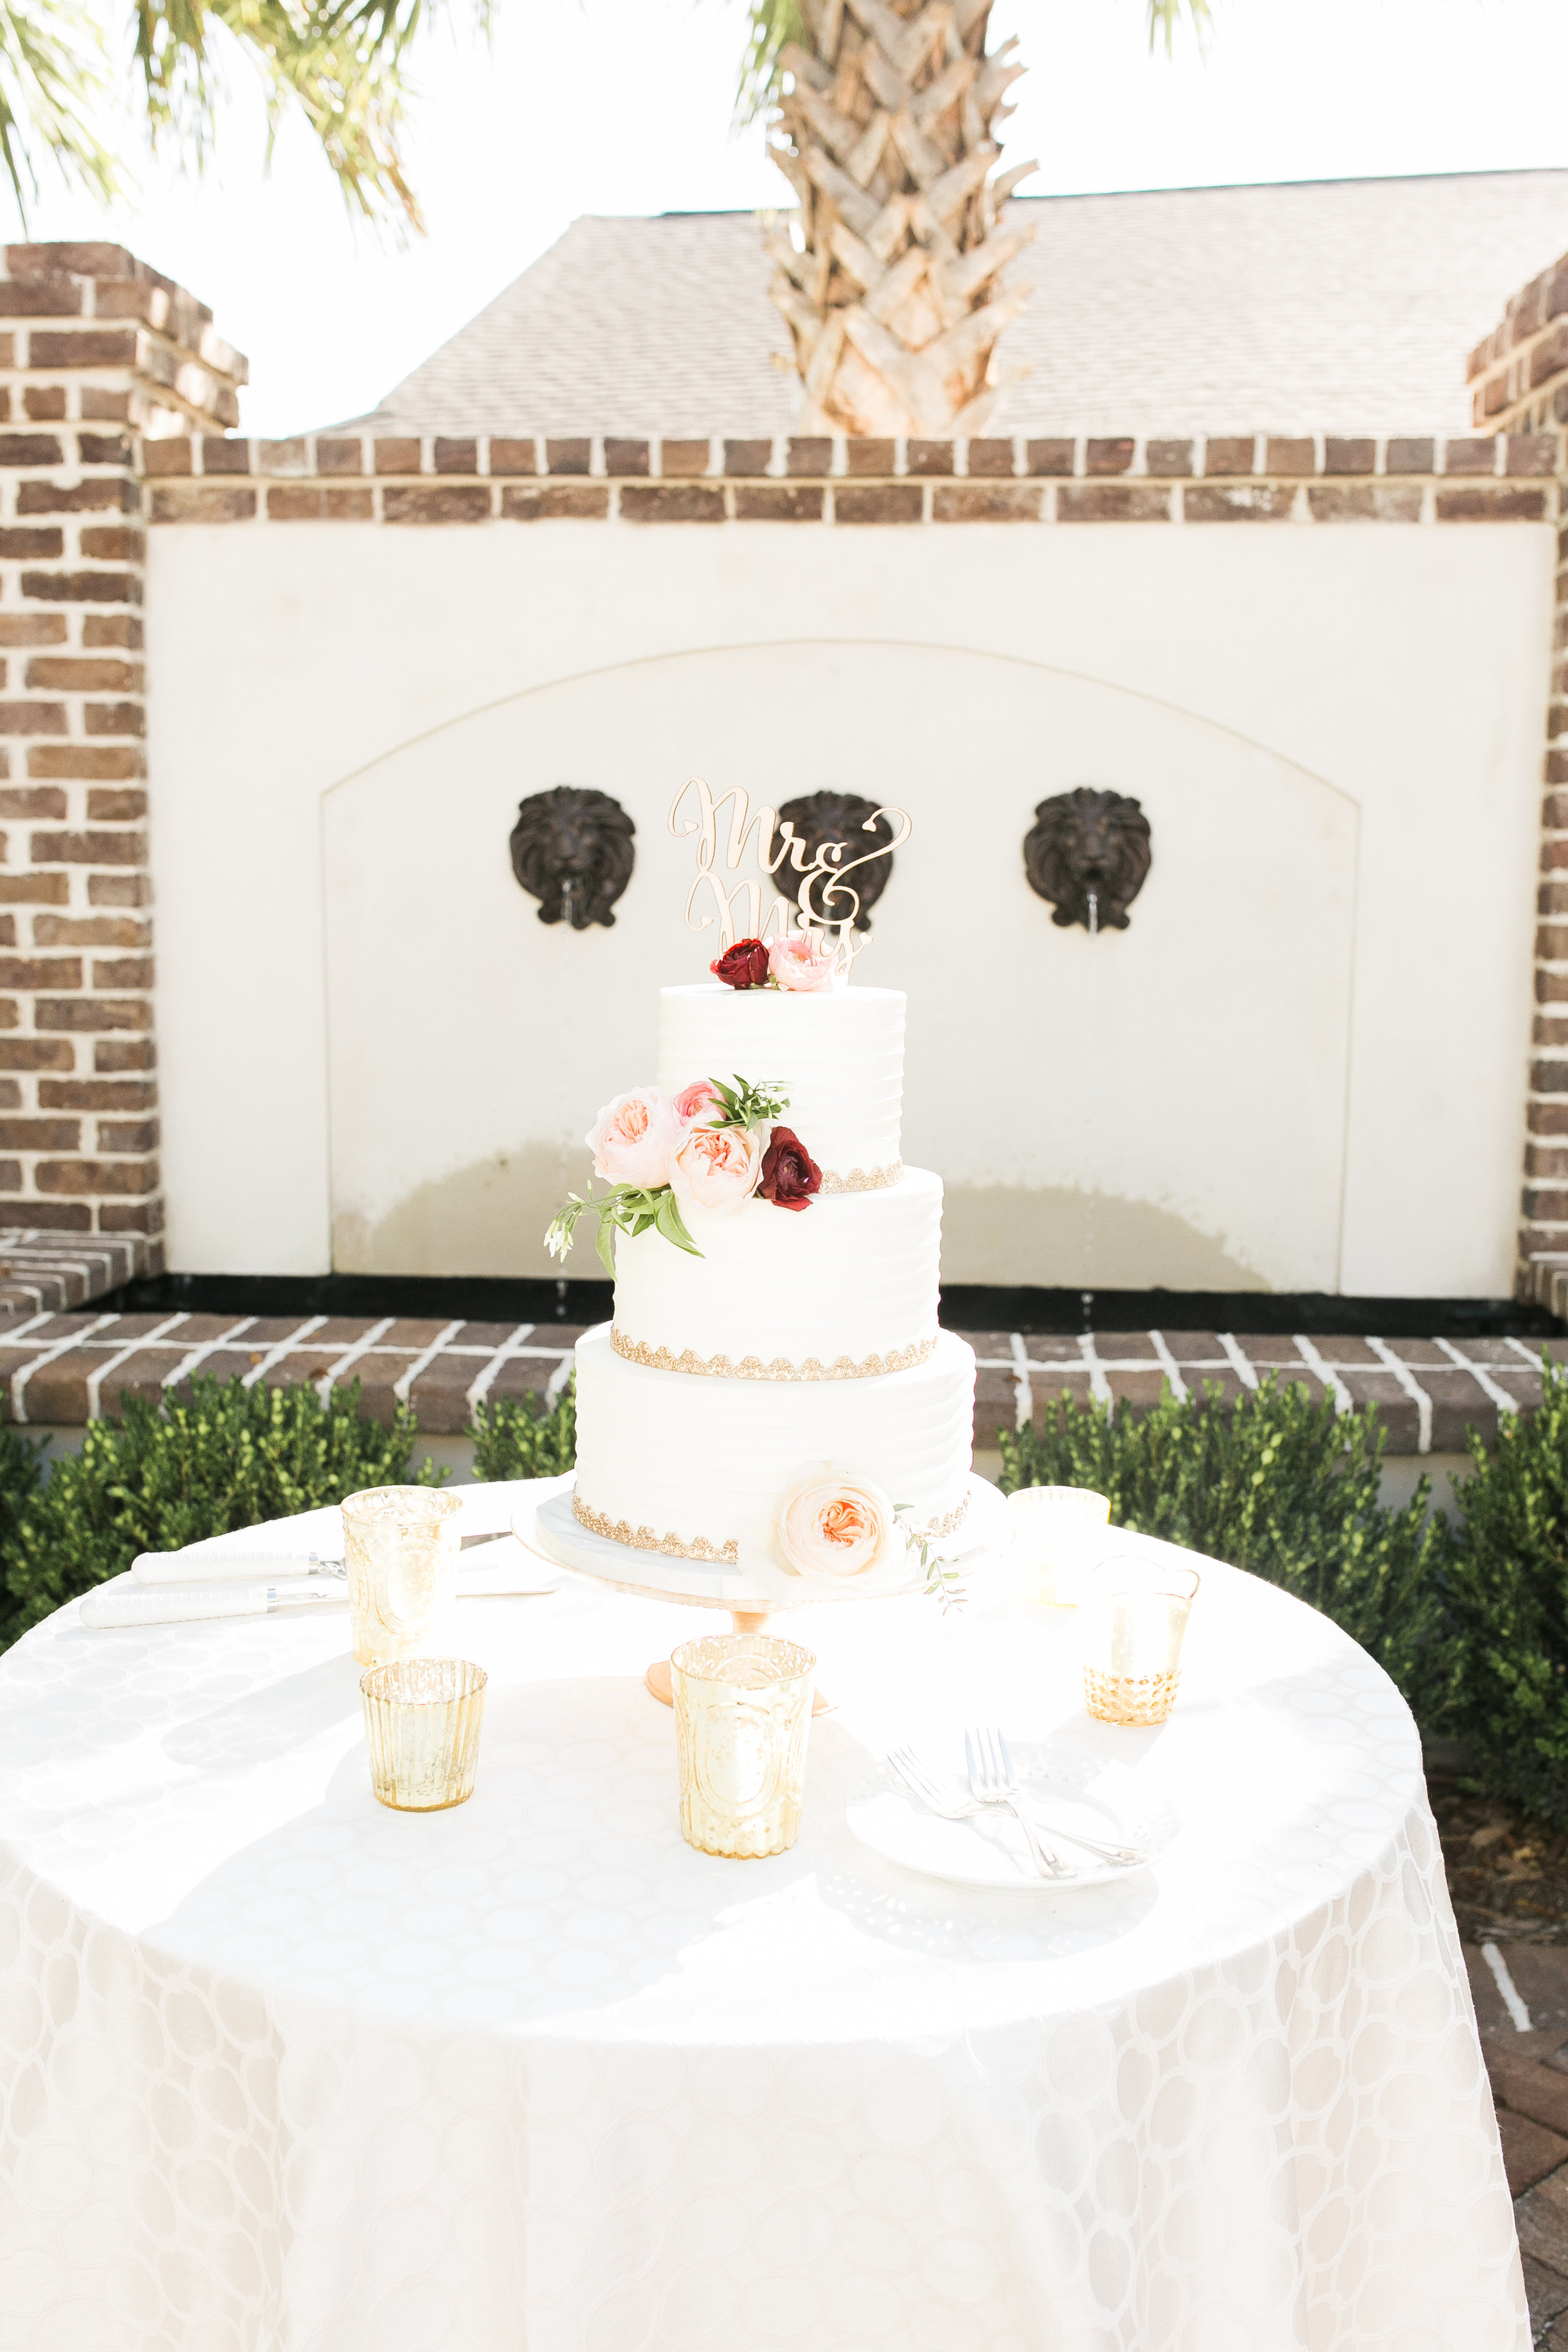 Four-tiered white cake with gold trim at Thomas Bennett House weddingg  Colorful outdoor reception at The Thomas Bennett House wedding in Charleston, SC  //  photographed by Jenna Weddings  Traditional wedding ceremony at Cathedral of St. John the Baptist in Charleston, SC  //  A Lowcountry Wedding Magazine & Blog